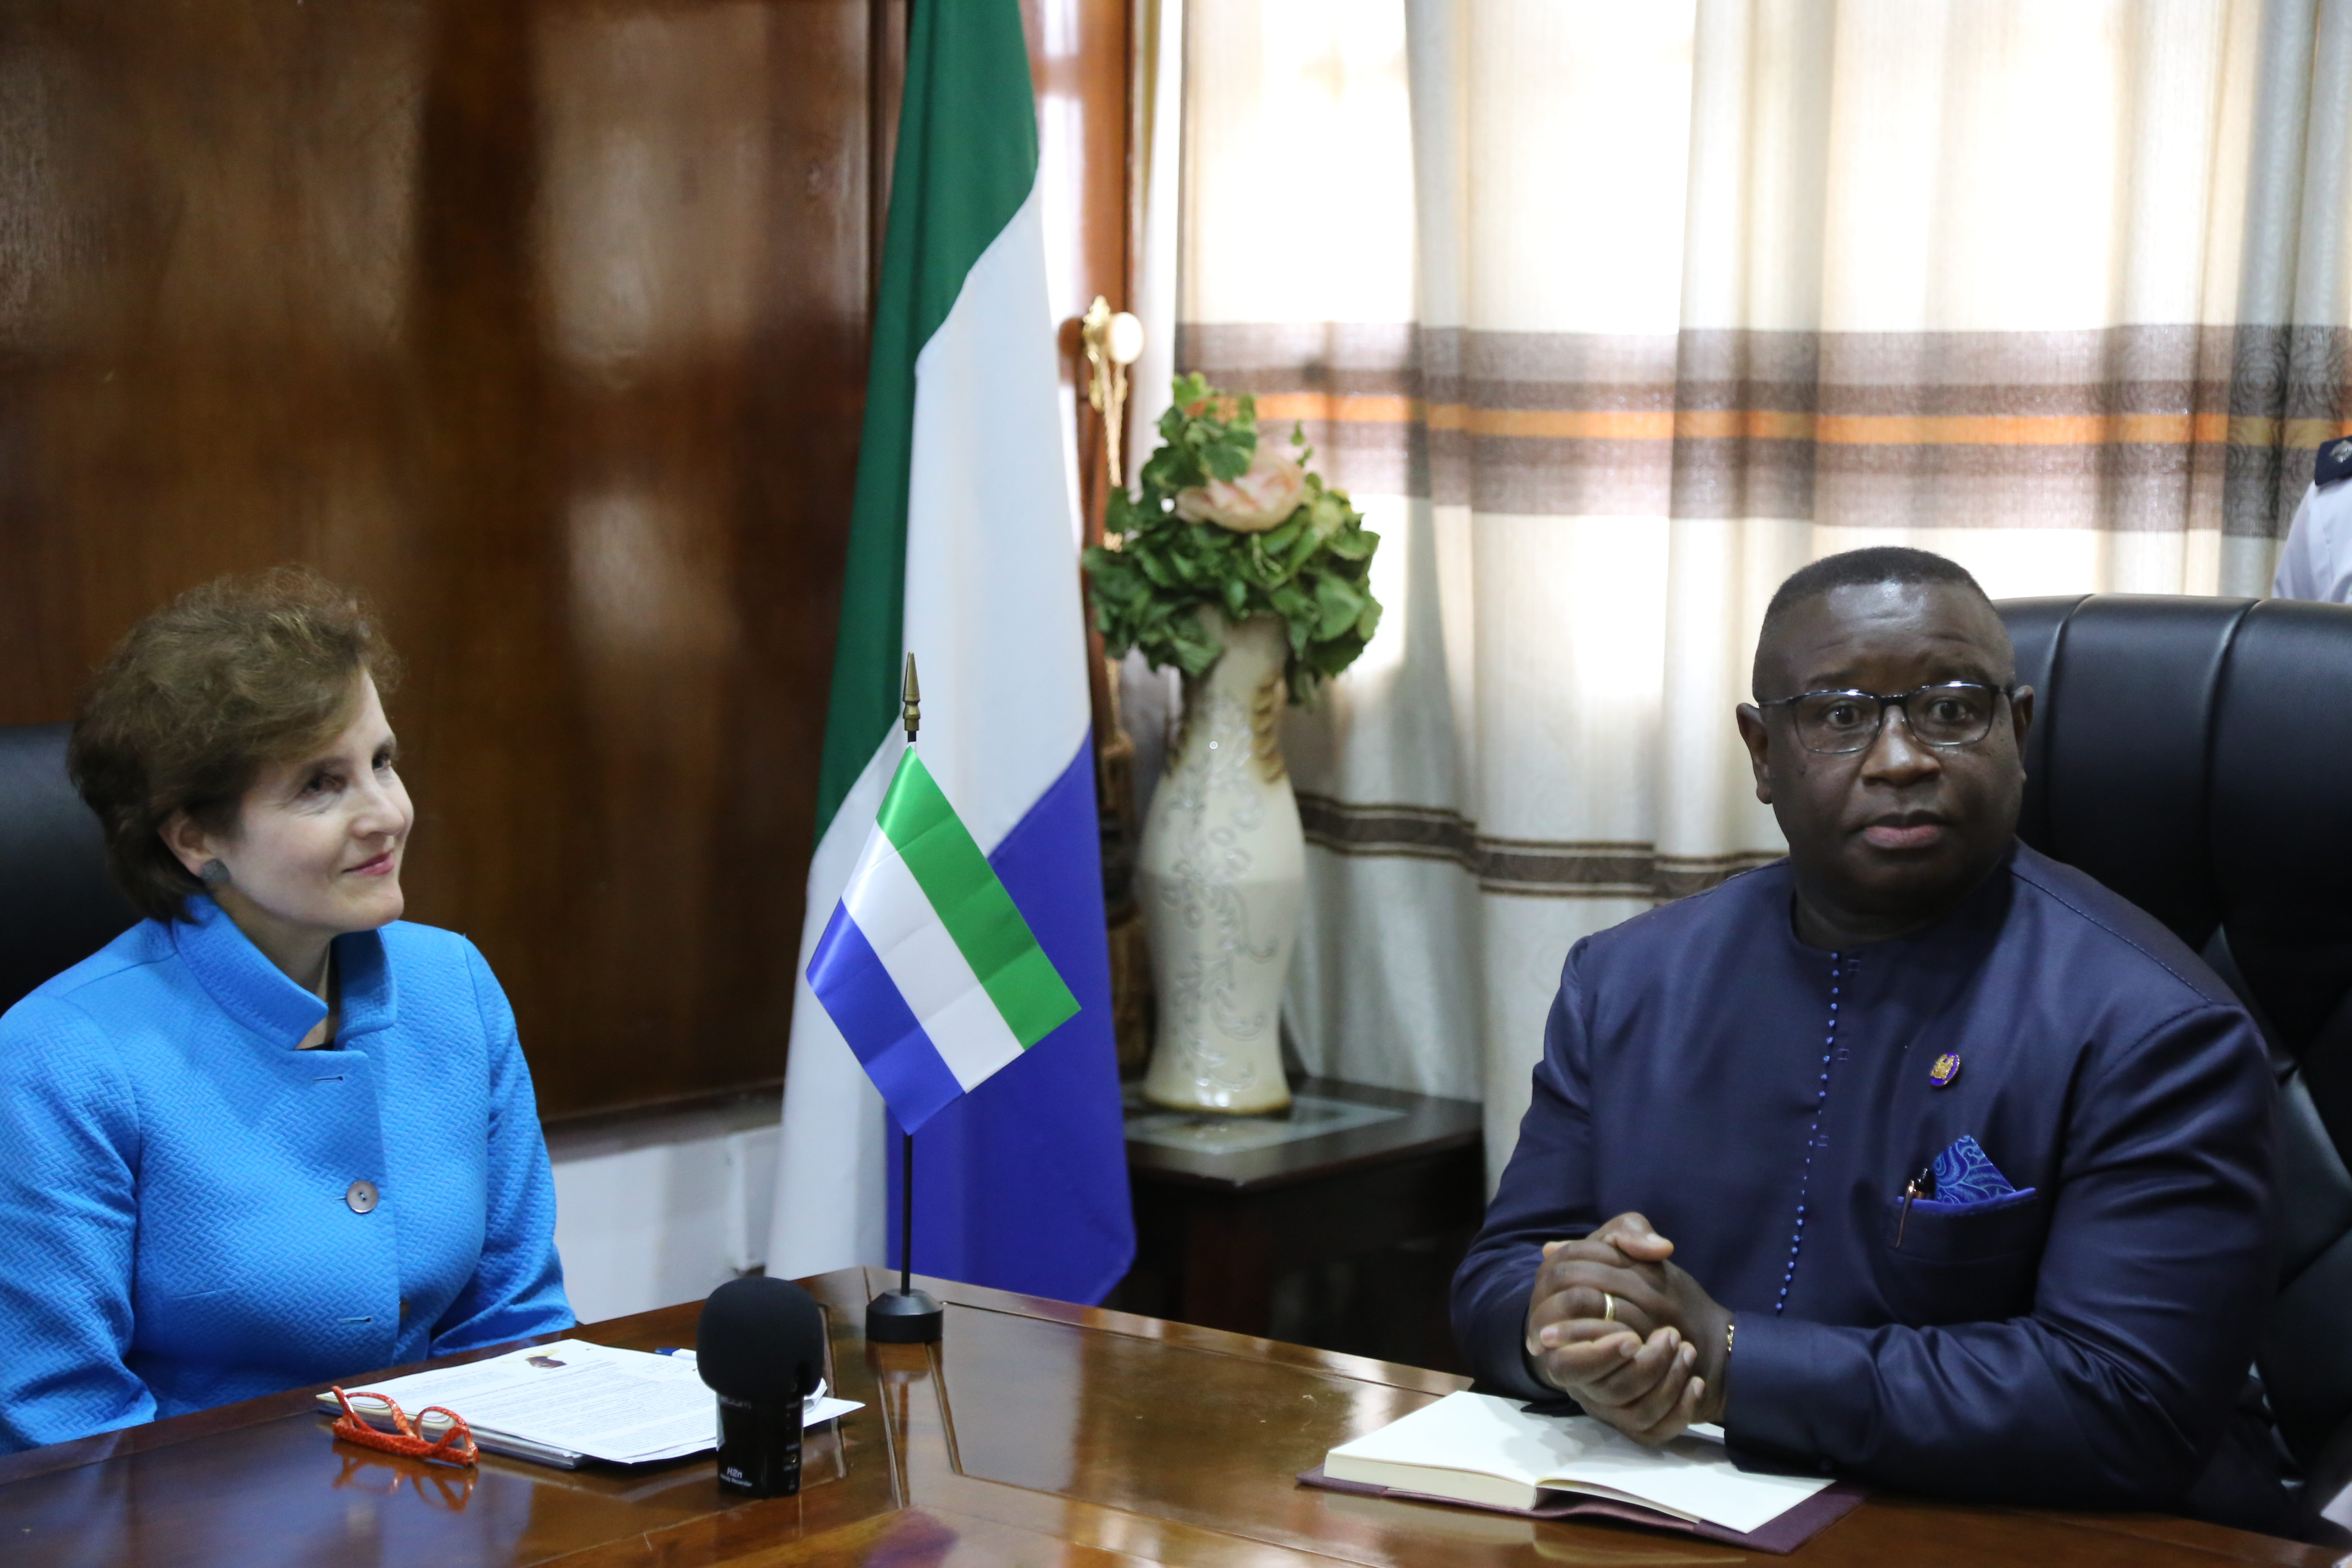 President of Sierra Leone, Julius Maada Bio (right) (photo credit: Global Partnership for Education/flickr)